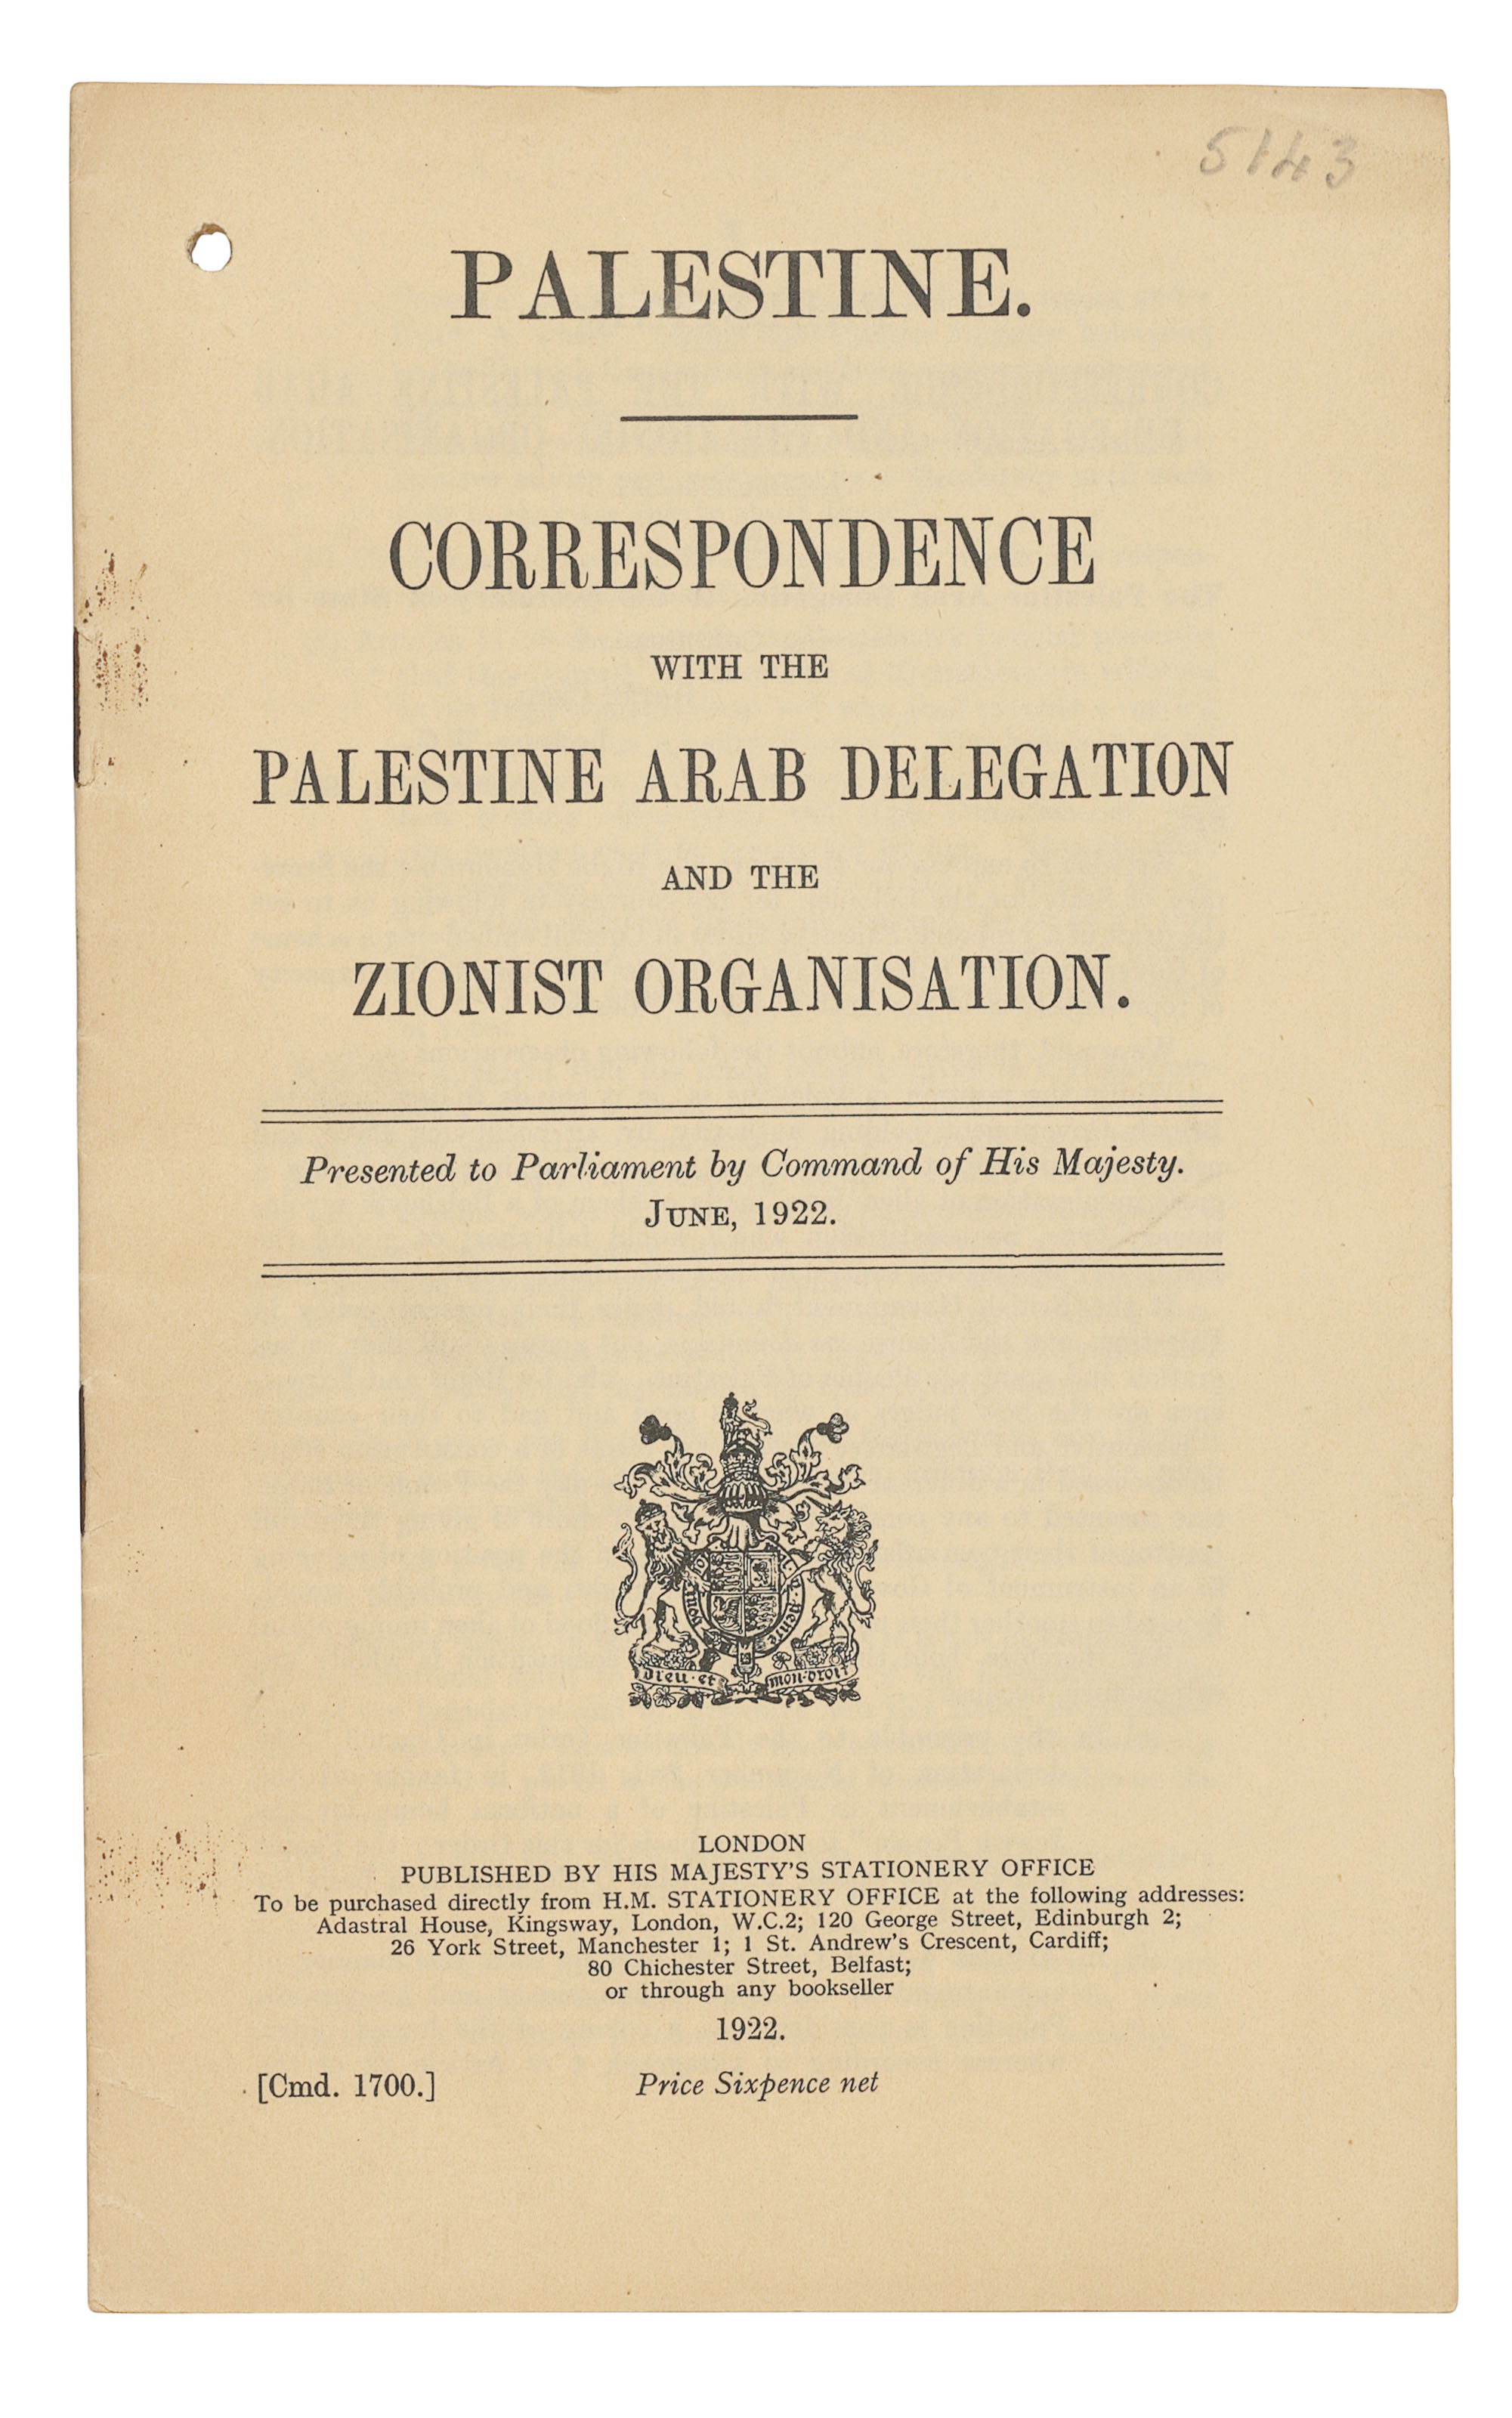 PALESTINE -- THE CHURCHILL WHITEPAPER -- Palestine. Correspondence with the Palestine Arab Delegation and the Zionist Organisation. [Cmd. 1700.] London: HMSO, 1922. 8° (246 x 152mm). 32 pp, verso of final leaf blank. (Single hole punch to margin, paper very lightly toned.) Self-wrappers, stapled as issued (staples rusting). Provenance: ?filing number in pencil to upper margin front wrapper.